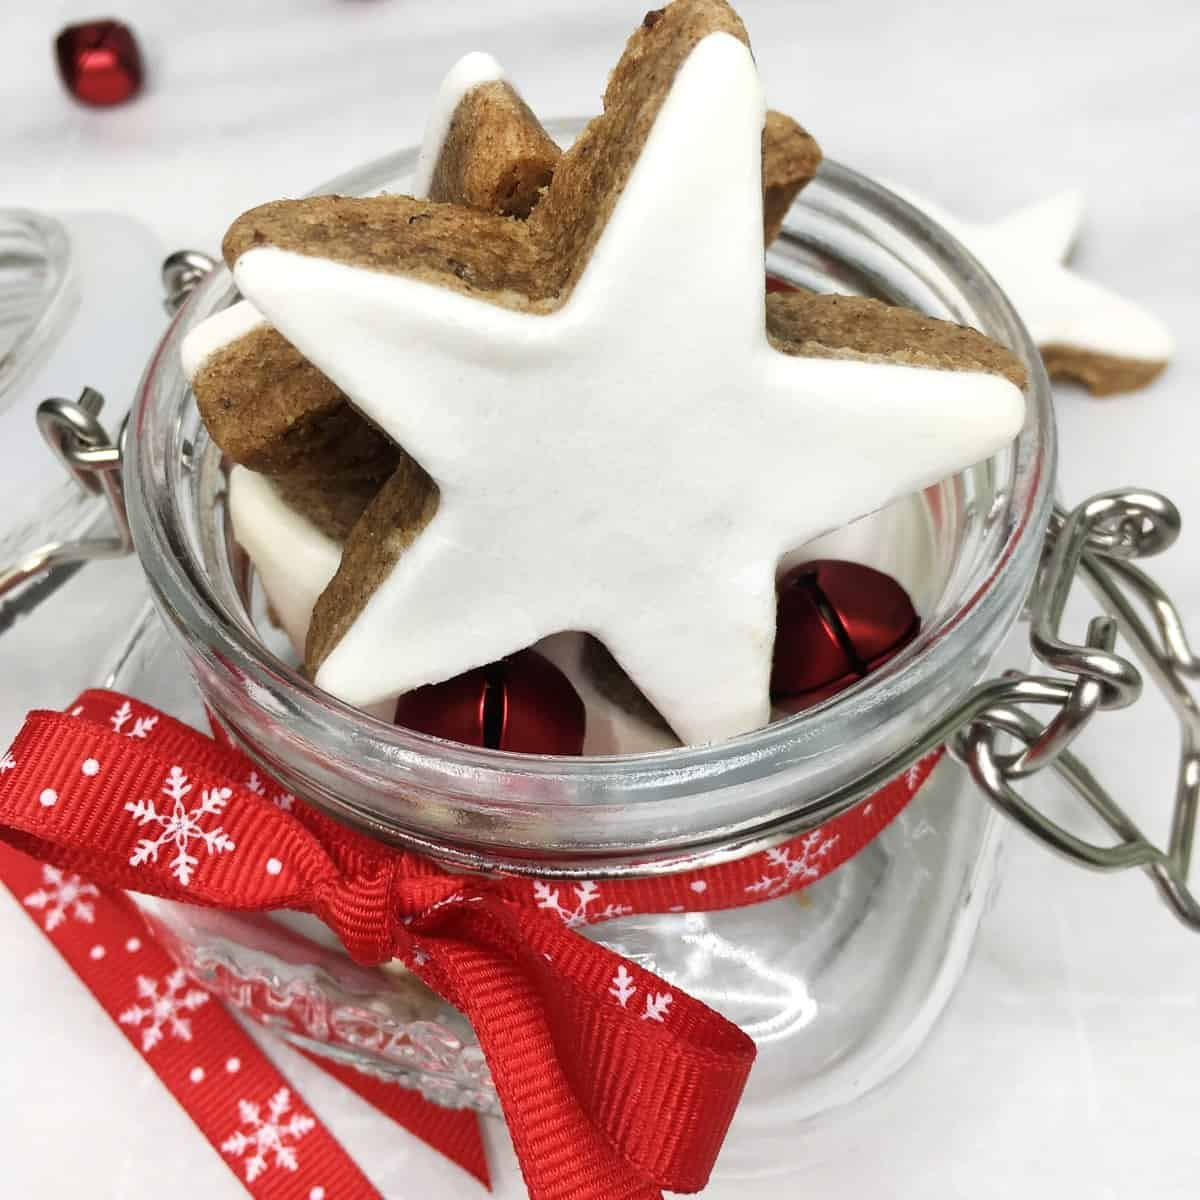 Star-shaped cookies coated with white glaze in a glass jar tied with the red ribbon